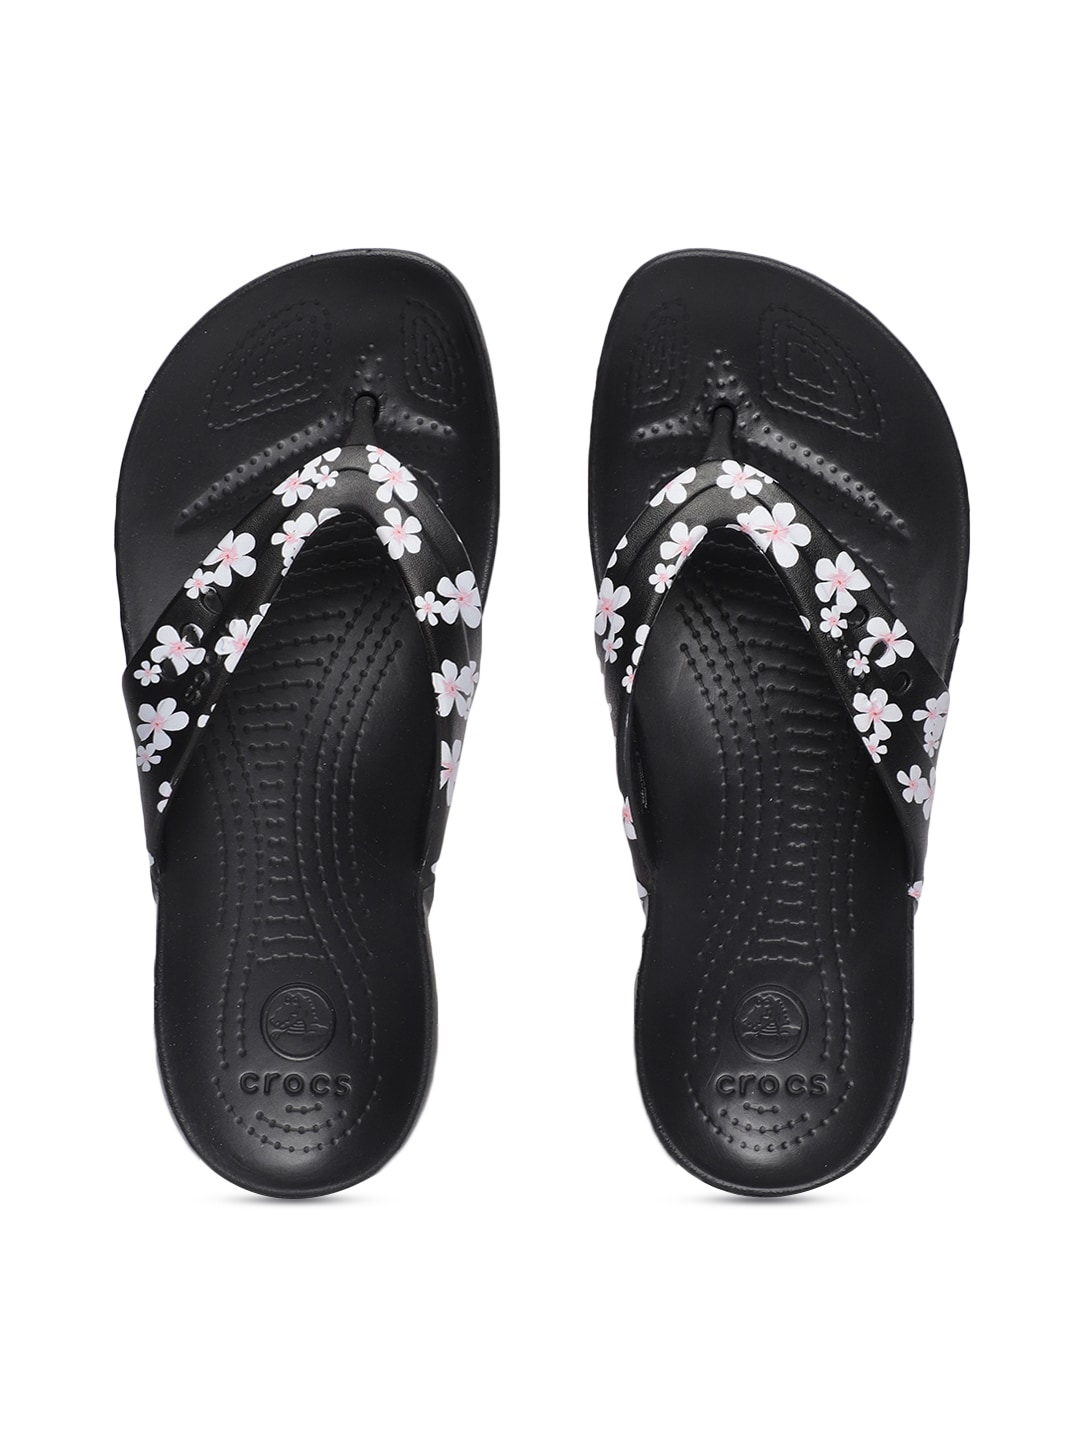 f20754c2437be Crocs Shoes Online - Buy Crocs Flip Flops   Sandals Online in India - Myntra